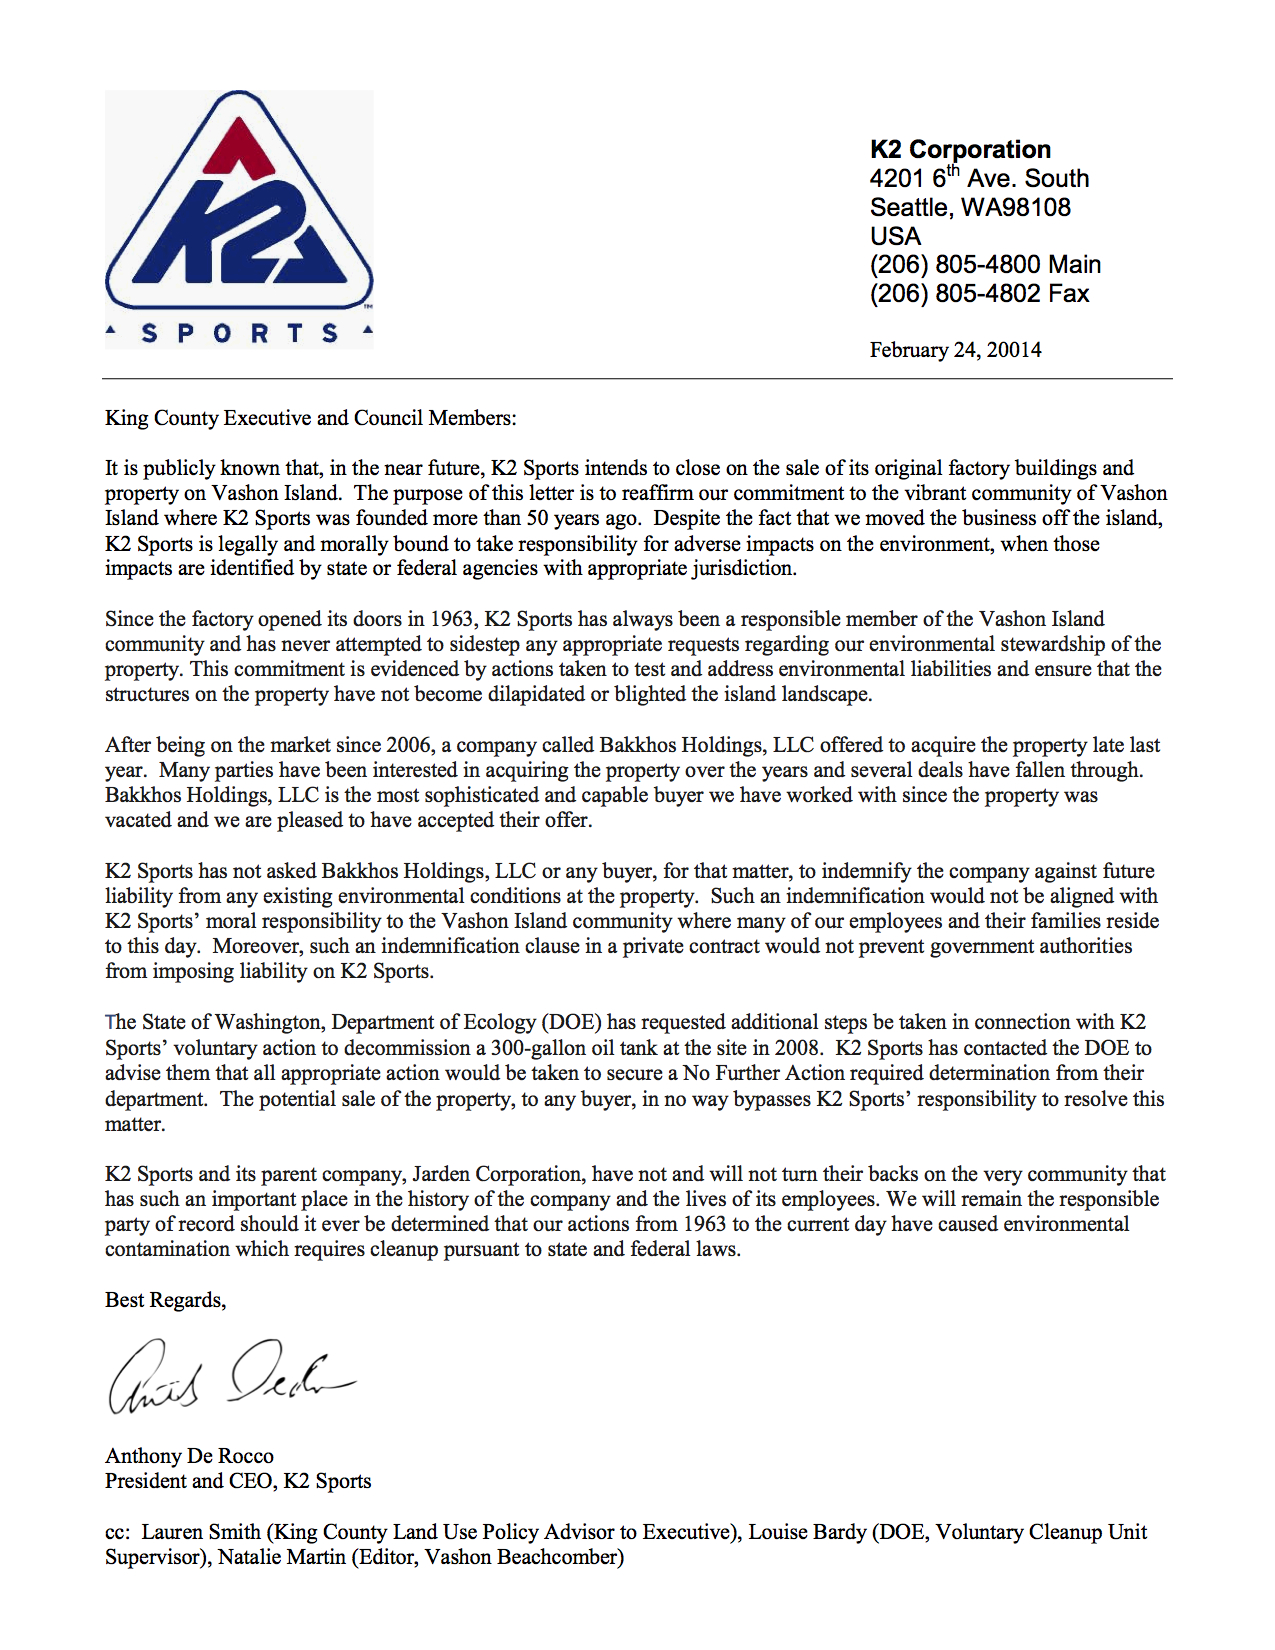 King County Council Letter_K2 Sports_022414_Signed.jpg